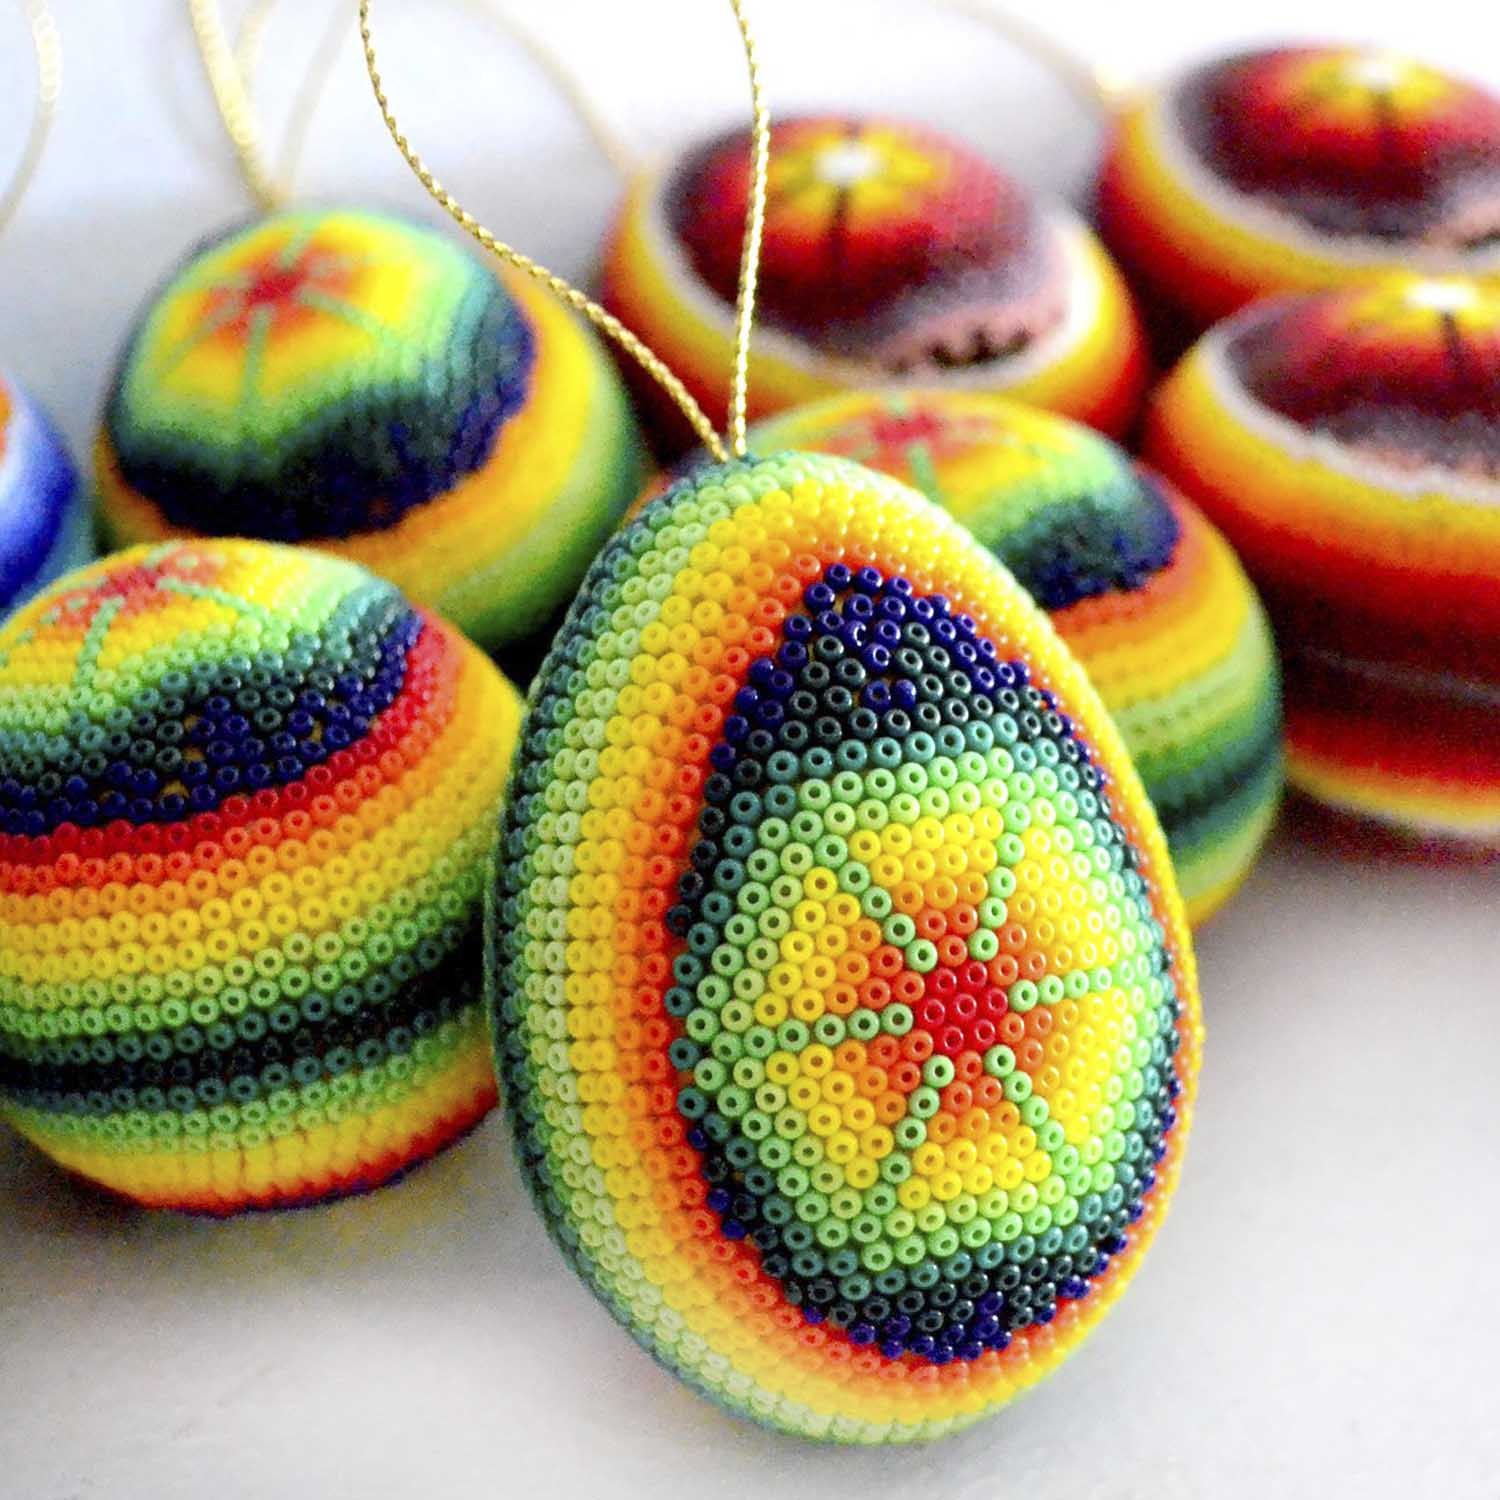 Eggs with beads